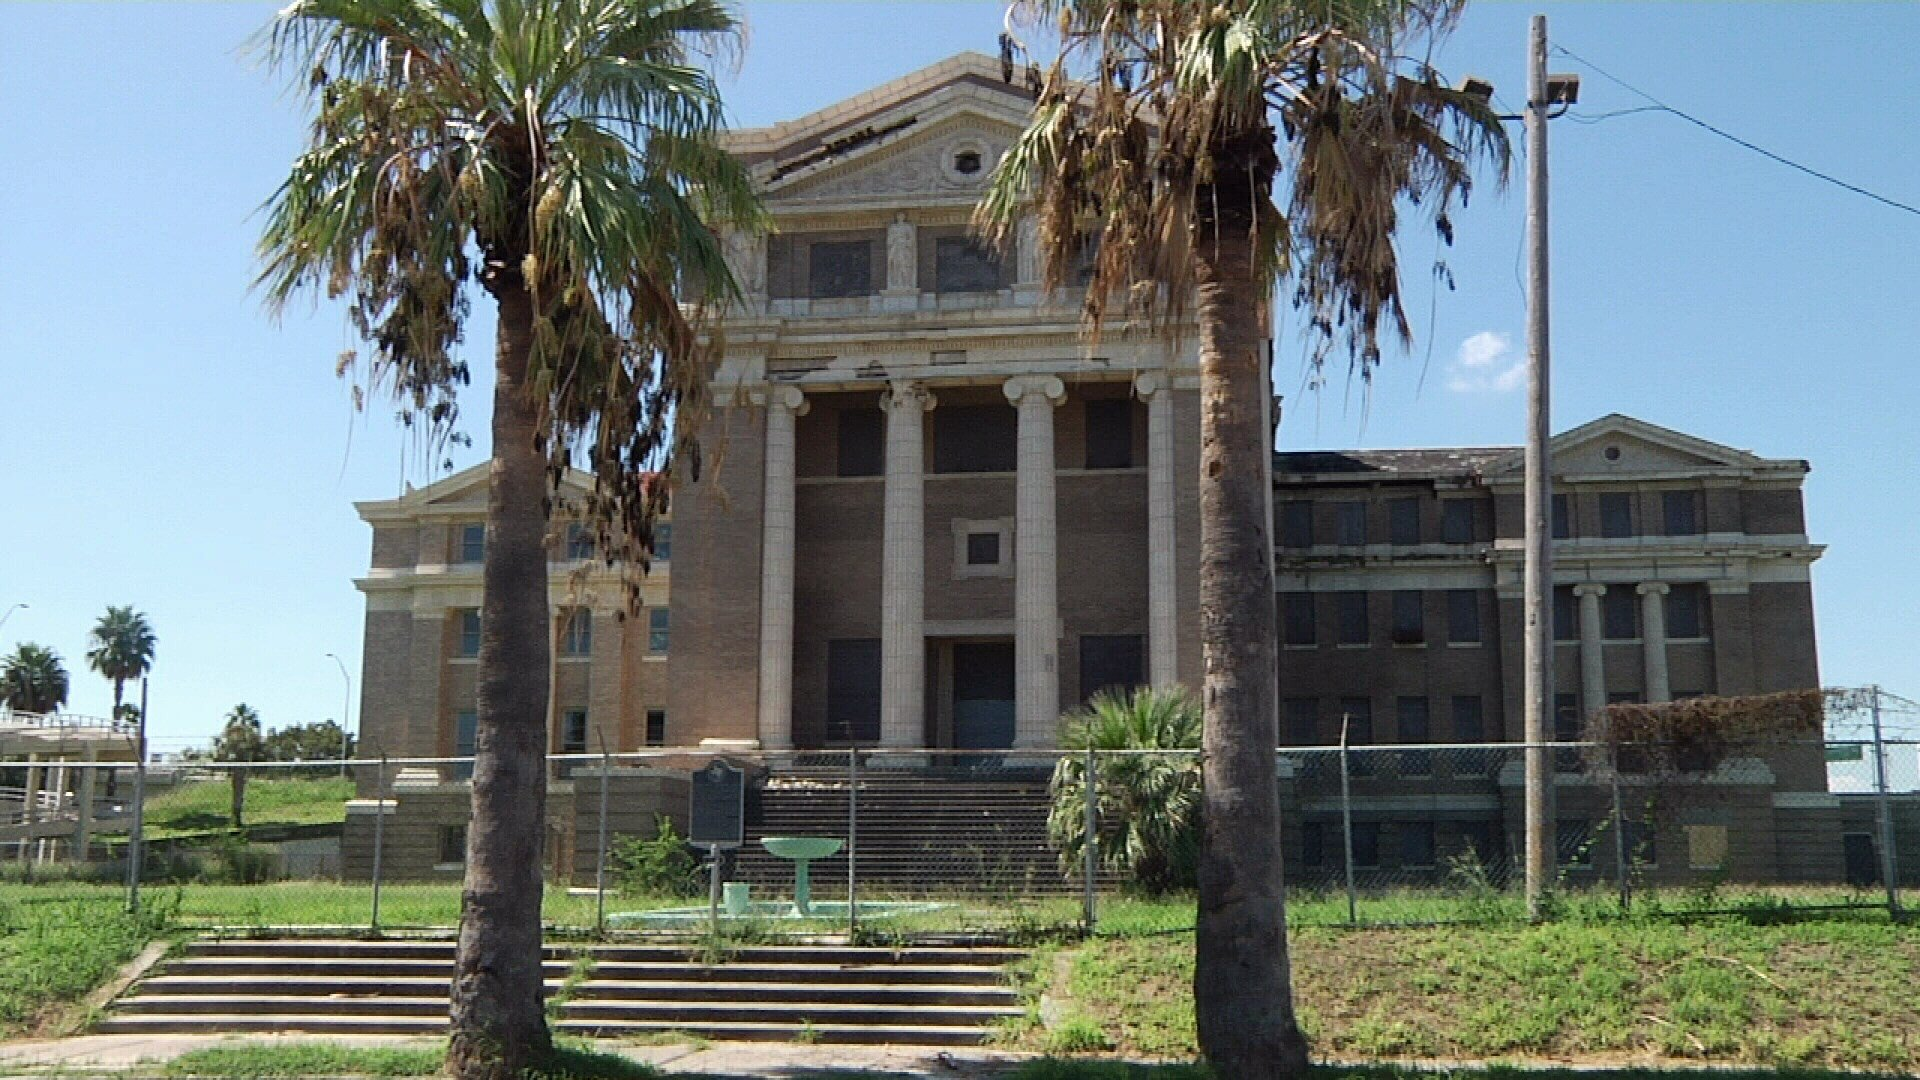 The county has put the former Nueces County Courthouse up for sale.